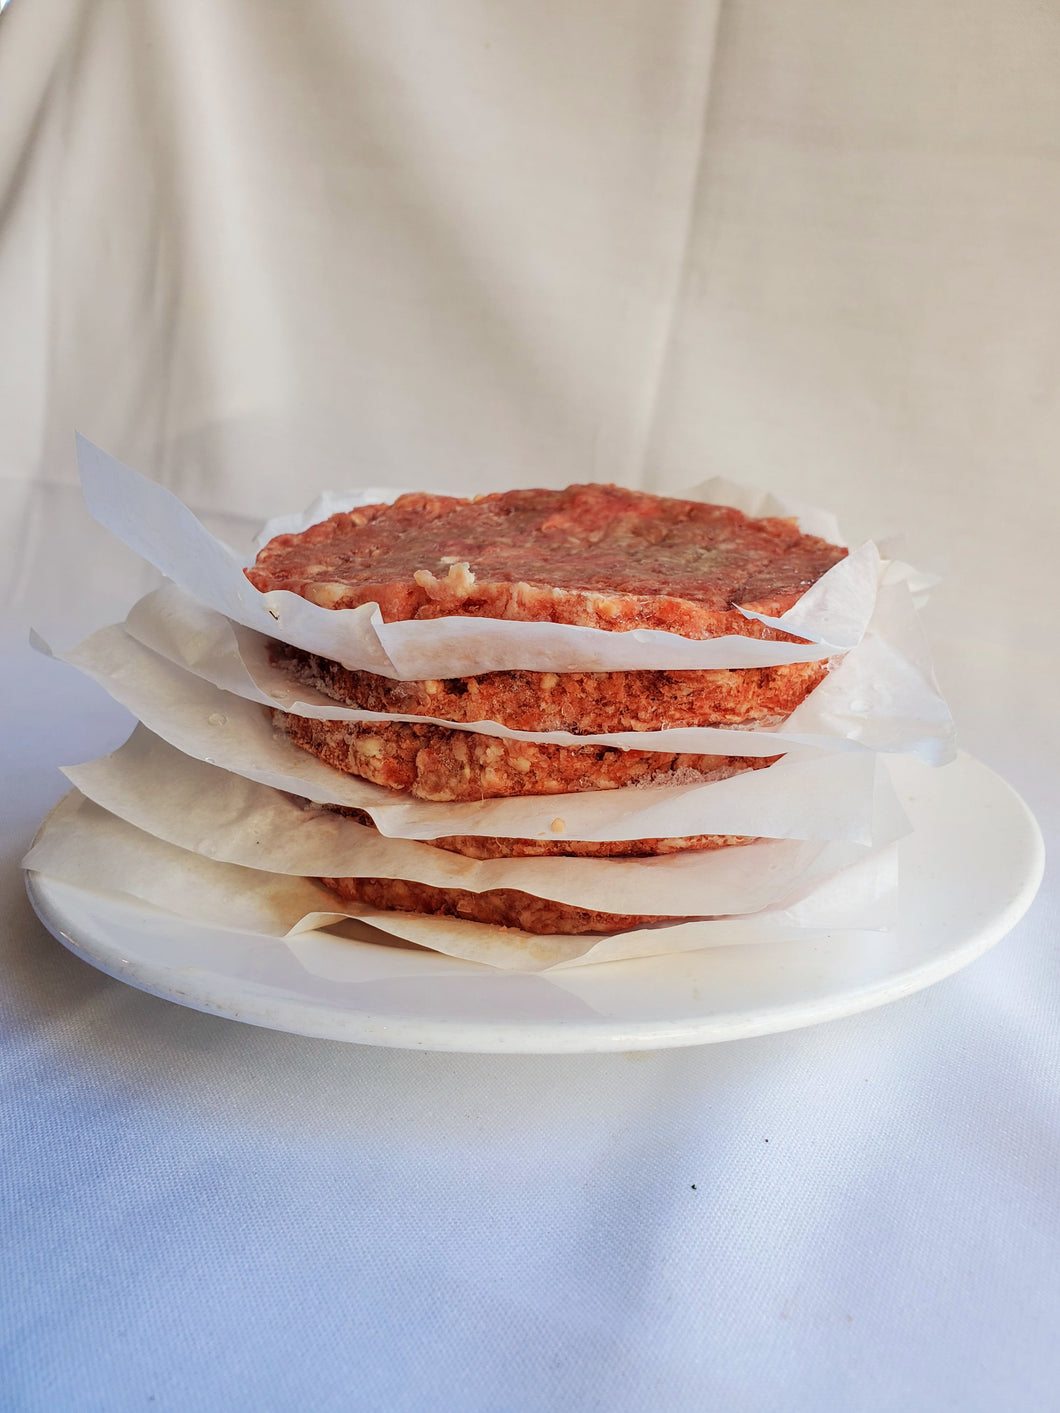 Meat, Burger, Beef 80/20, Hormone & Antibiotic Free (5 - 1/4 lb Patties)